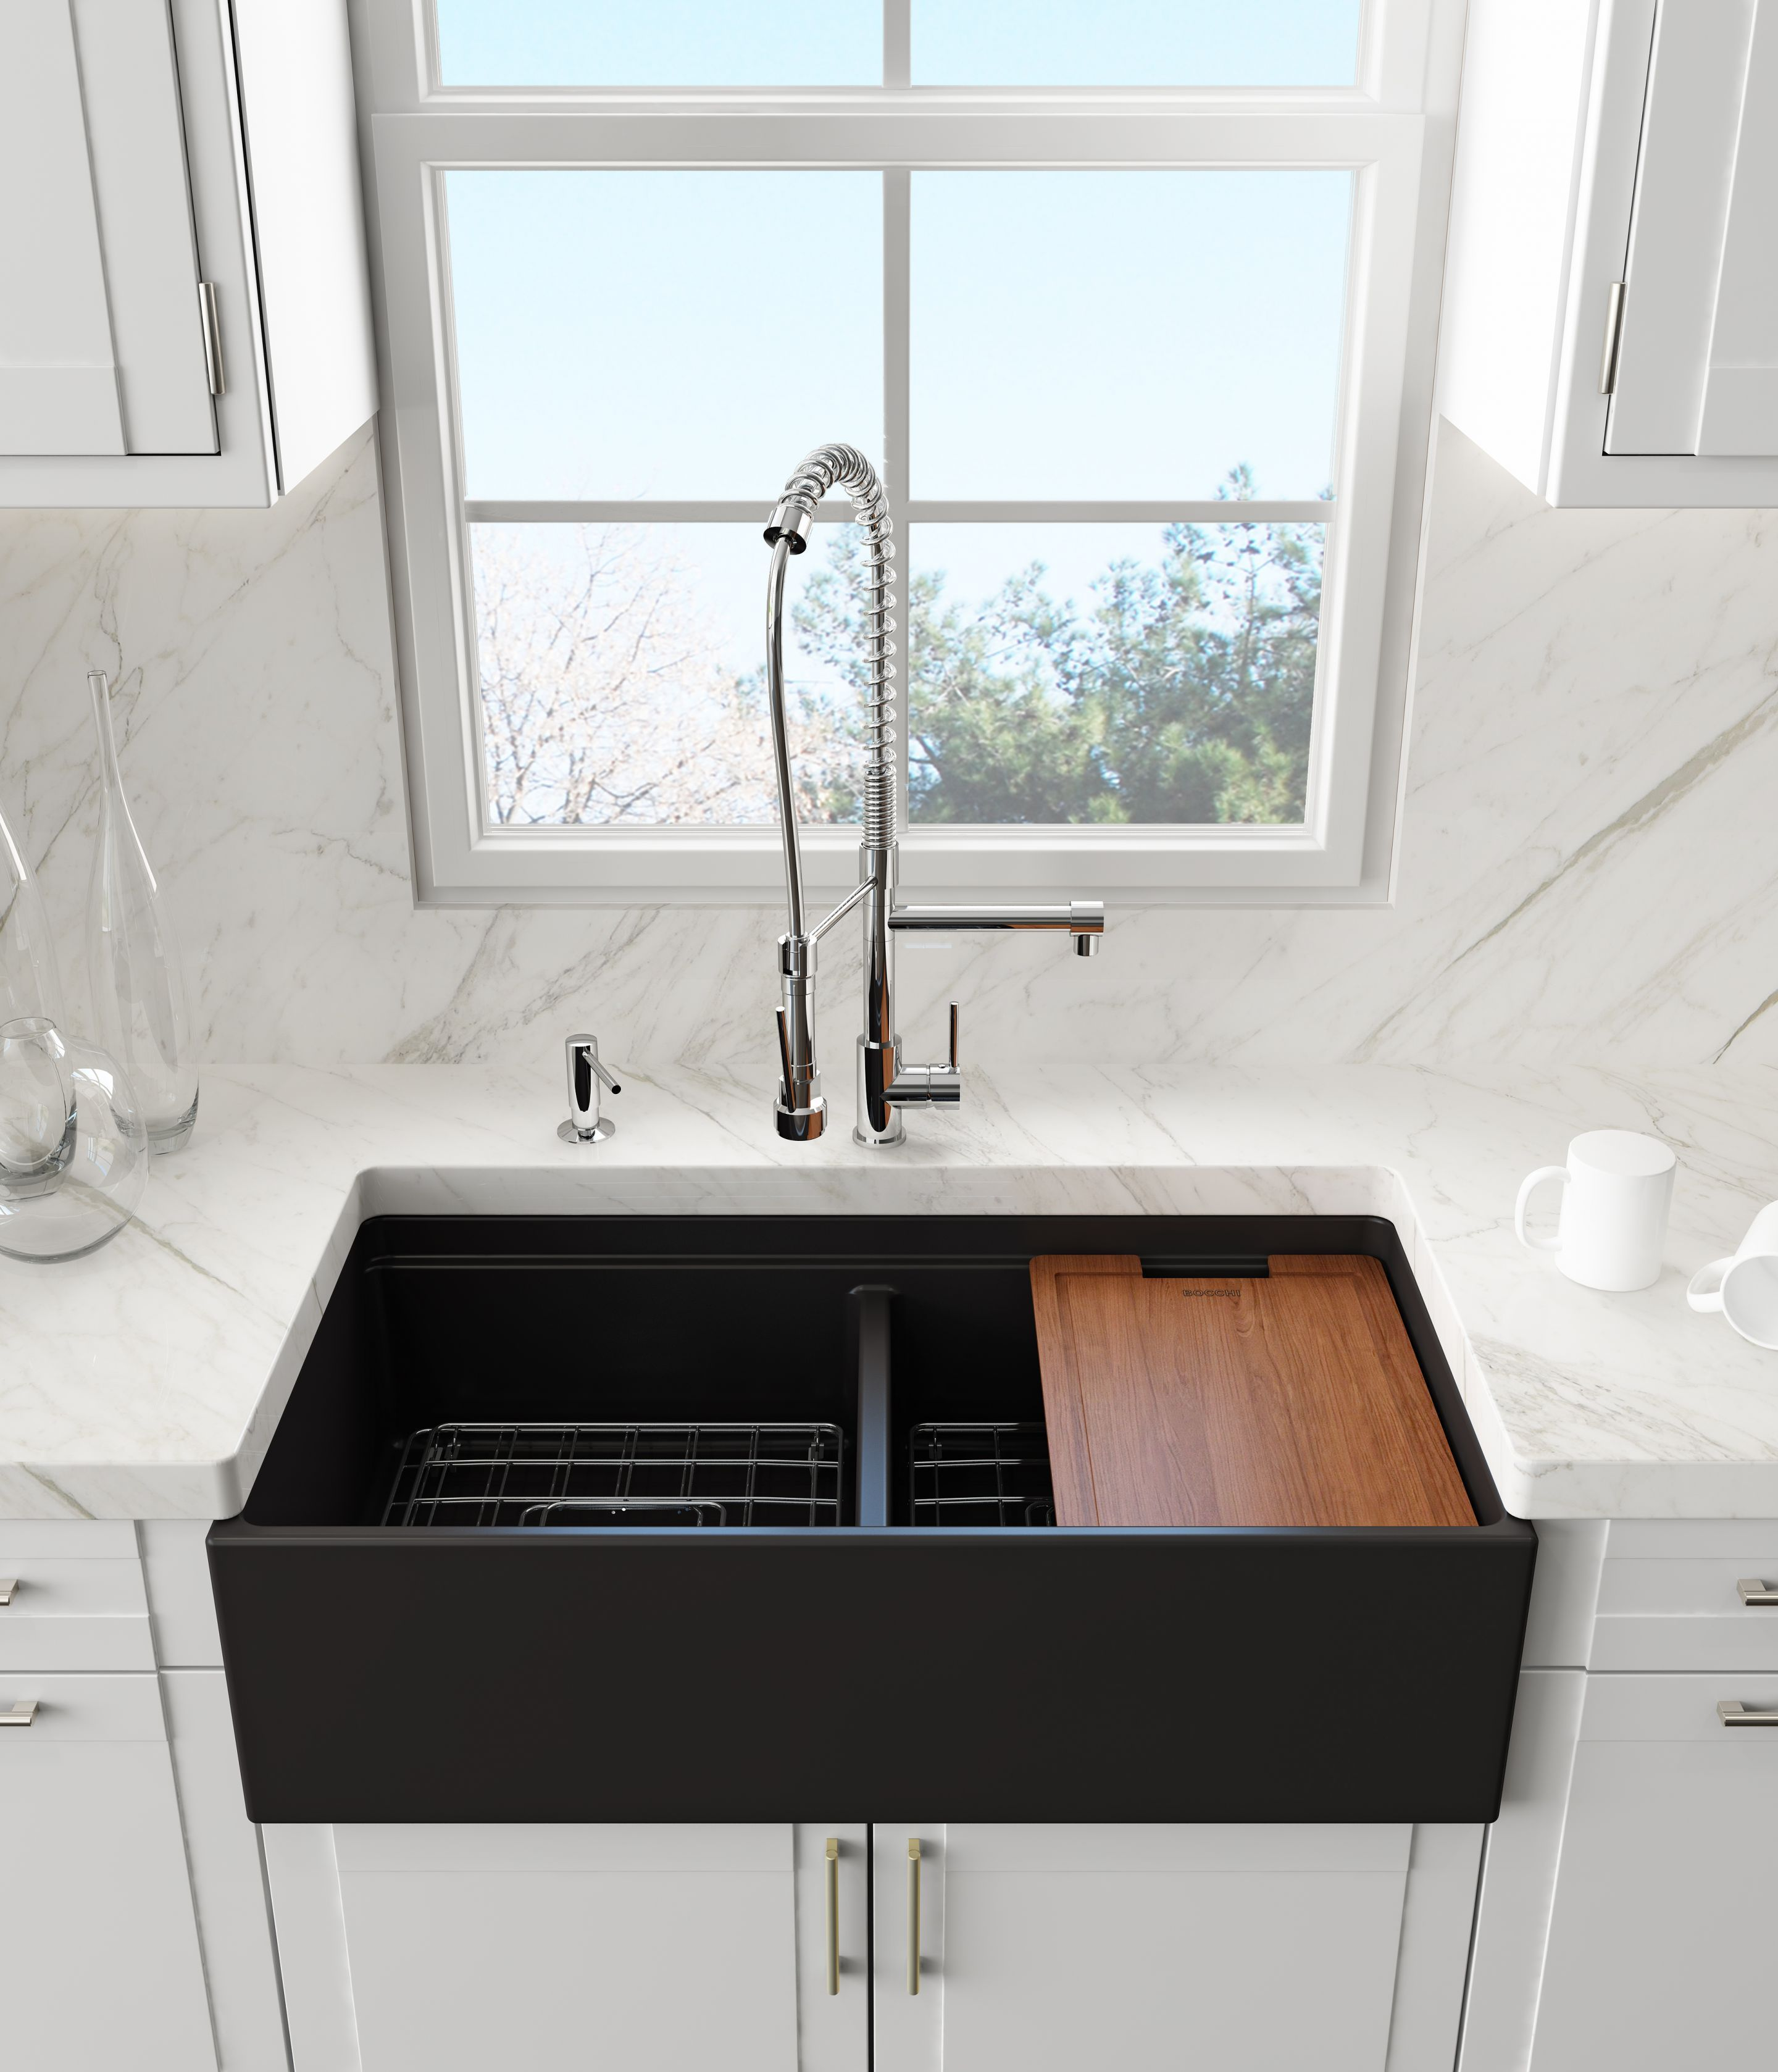 Farmhouse Chic 5 Tips For Picking A Farmhouse Sink Black Southern Belle Farm Style Sink Black Farmhouse Sink Farmhouse Kitchen Design